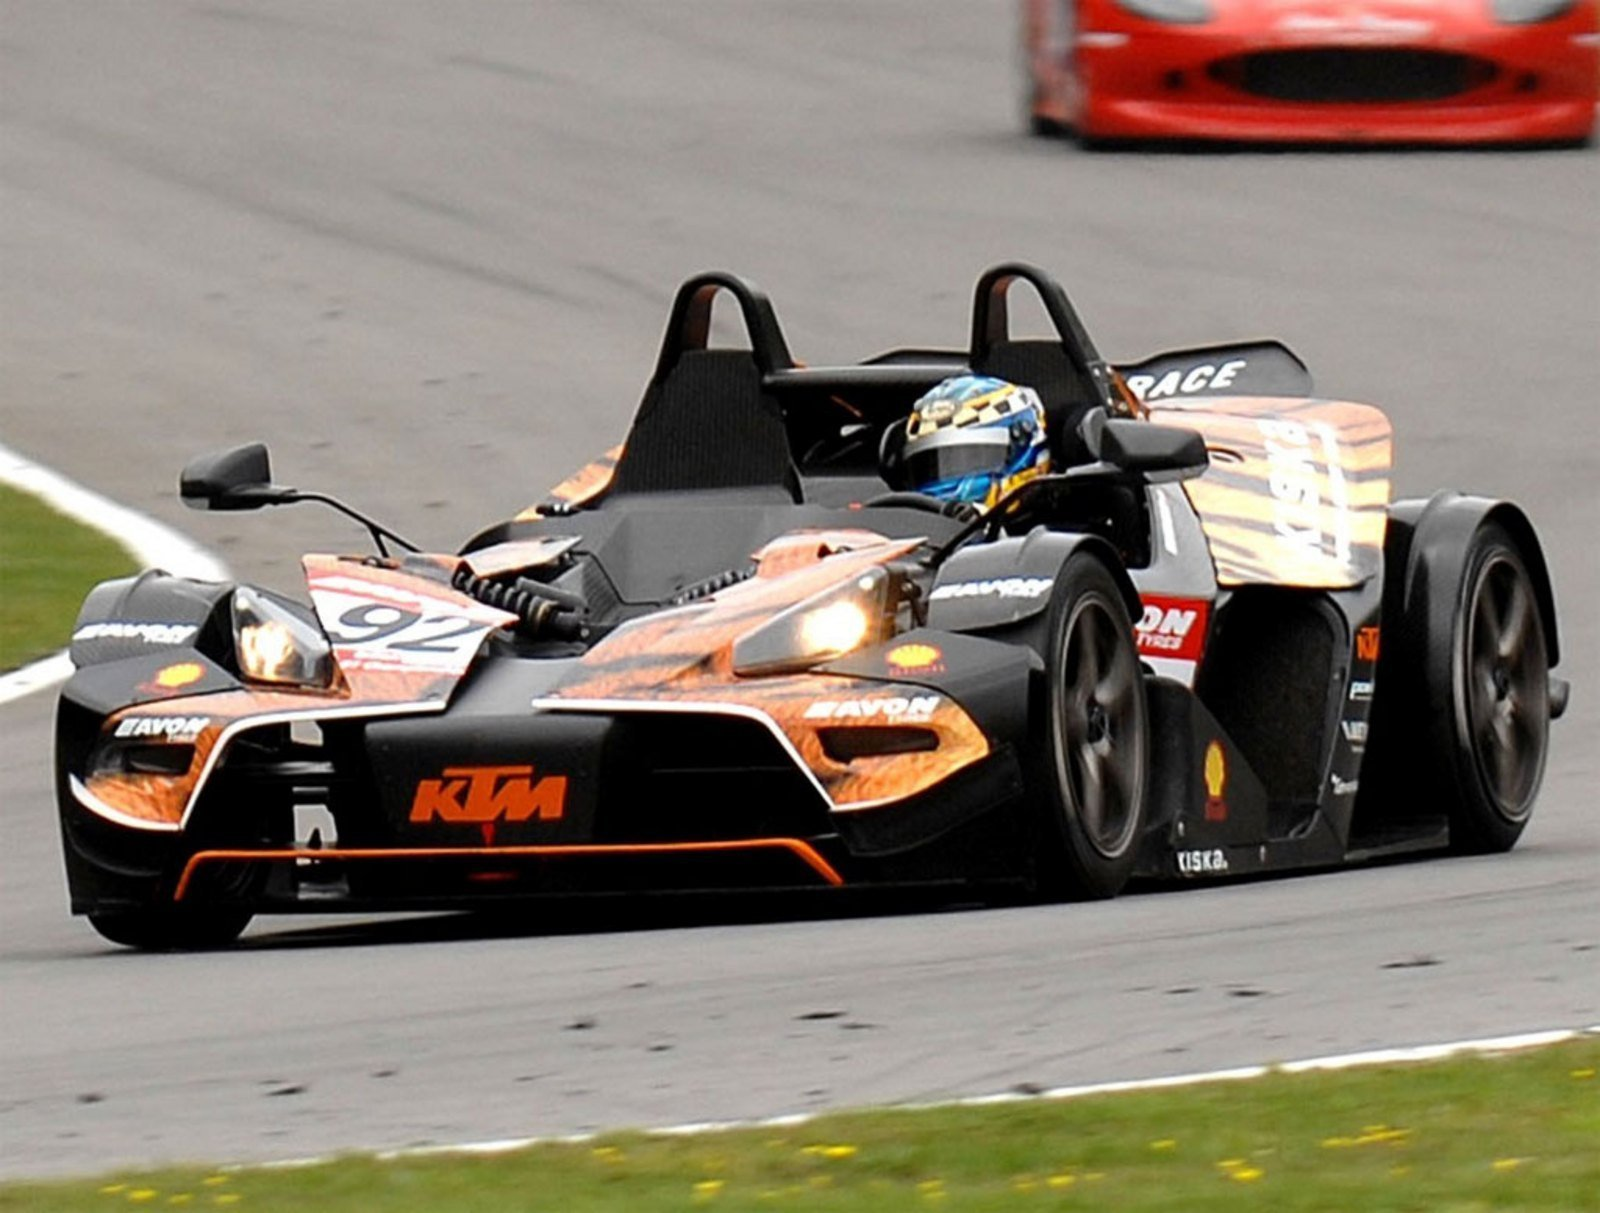 New 2010 Ktm X Bow Gt4 Review Top Speed On This Month